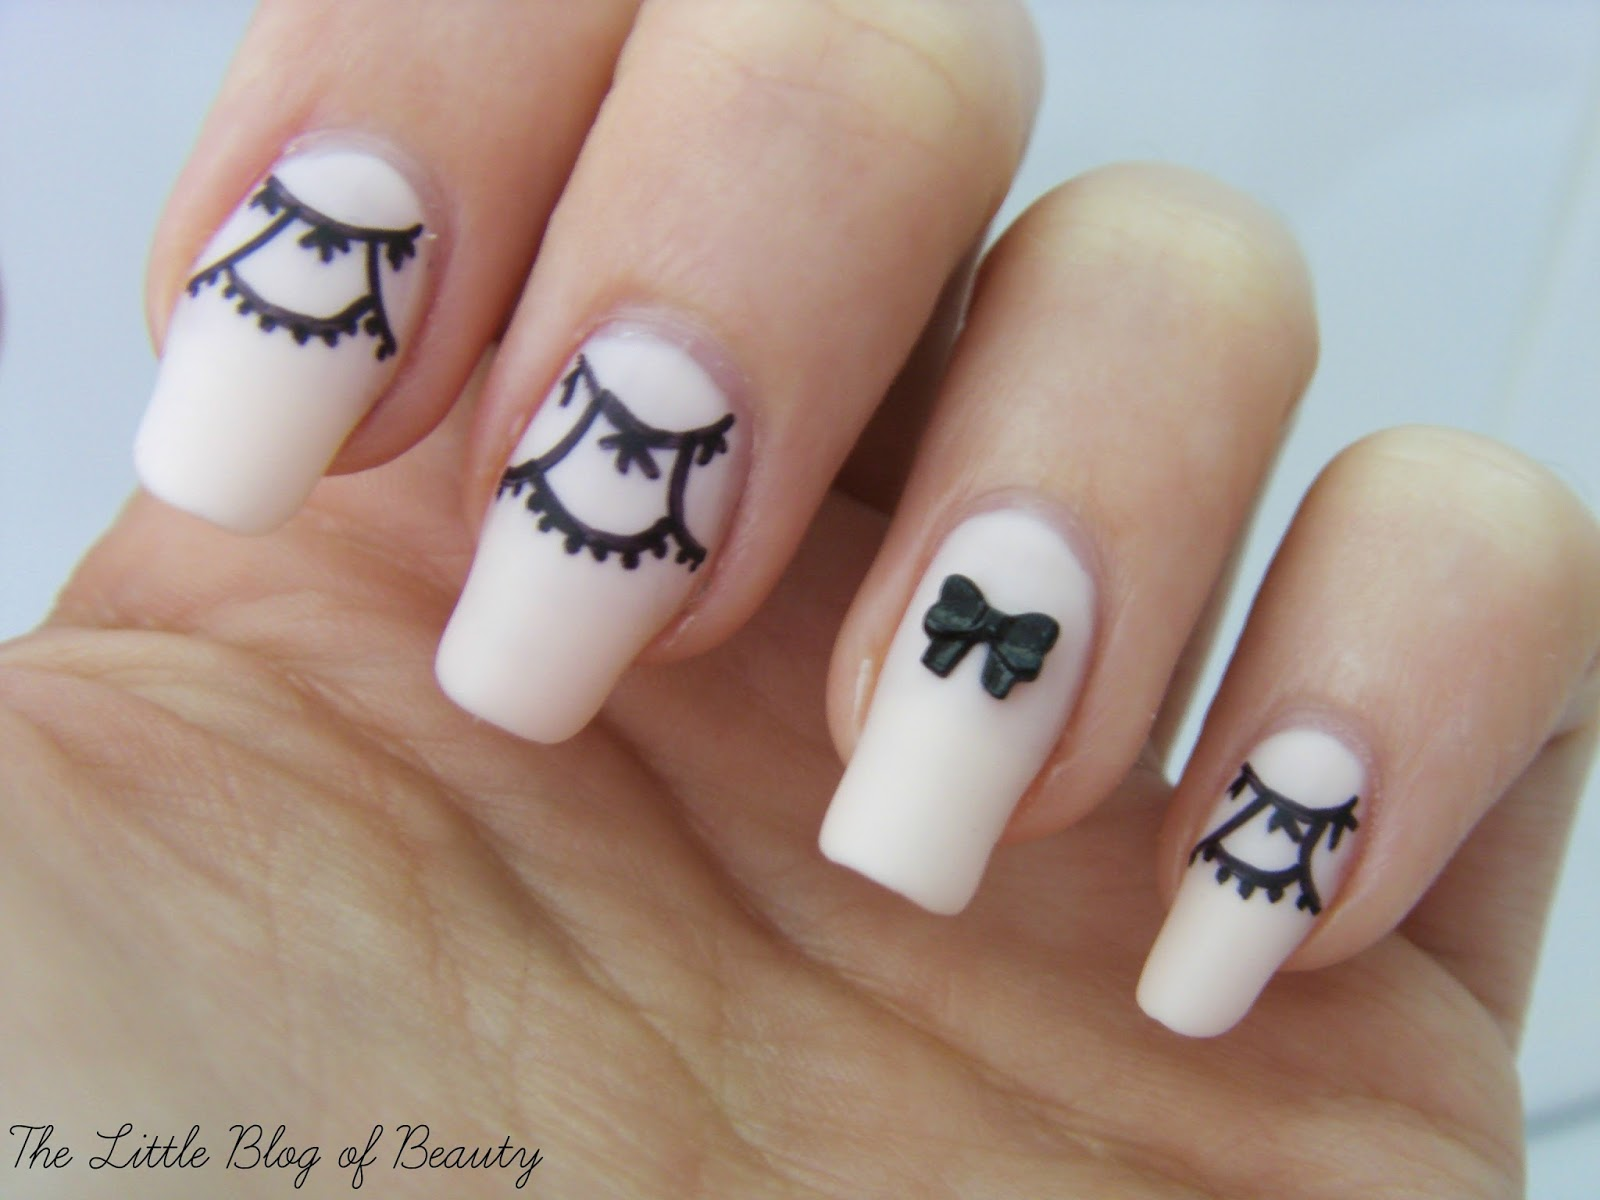 Lace and bows nail art